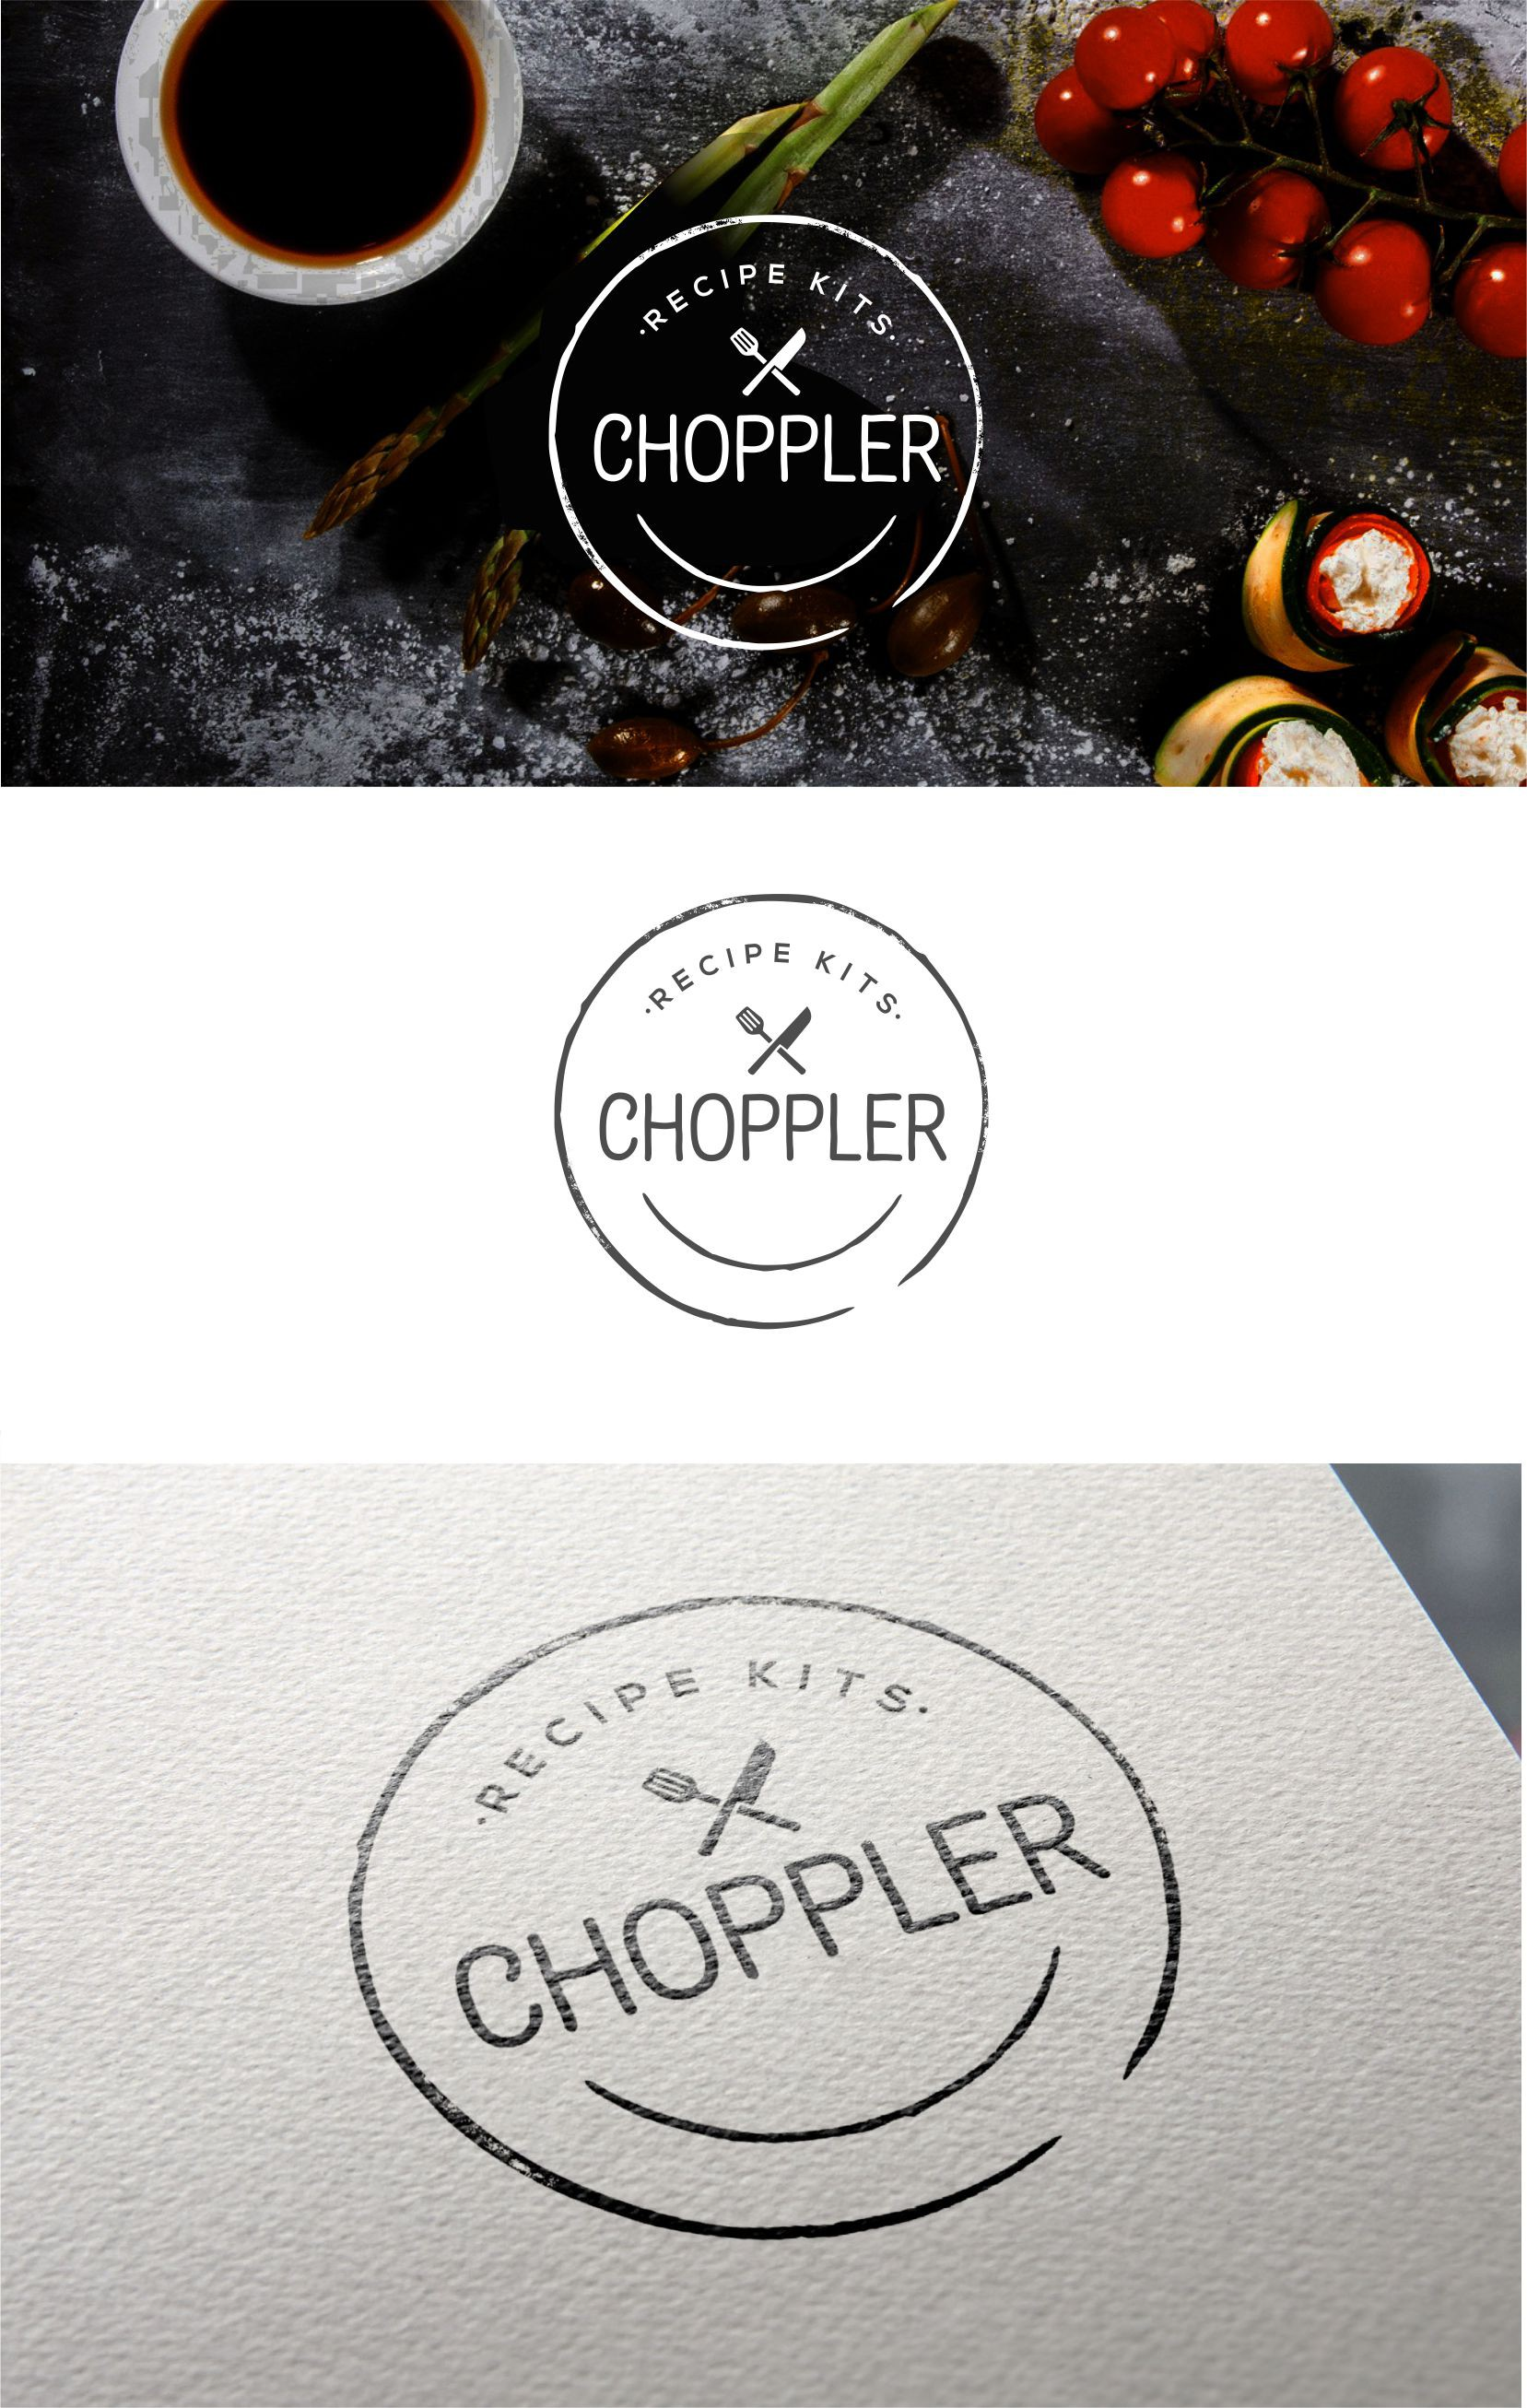 CHOPPLER is recipe kits done right, and we need a new logo!